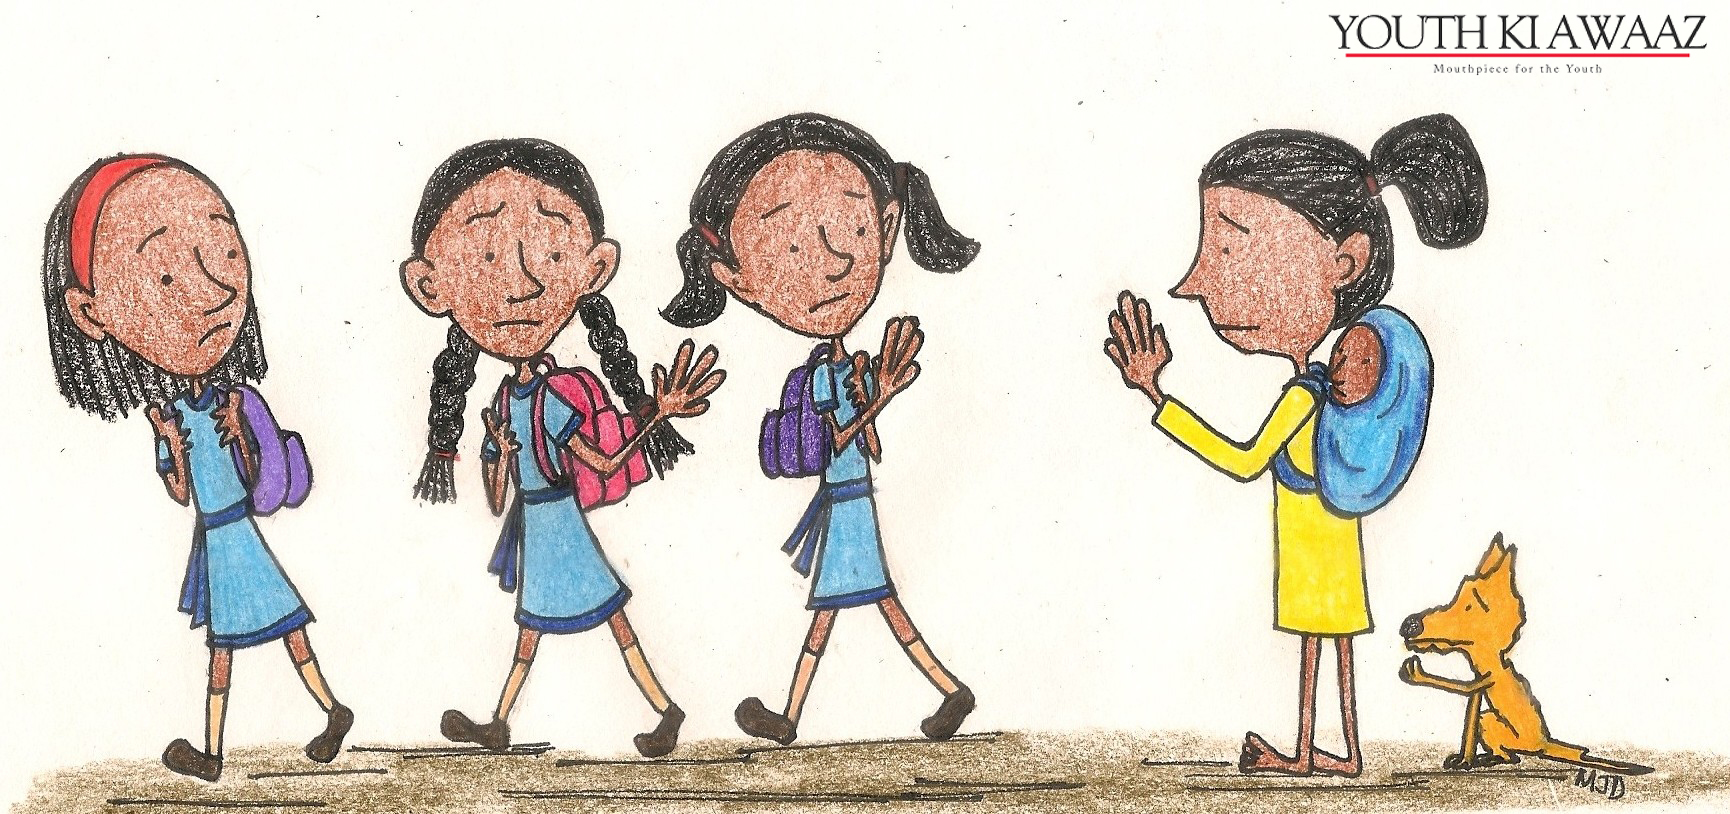 Doremai's Illustrations and Their Attention on Issues Facing Children in India | Leher NGO in India | Child Rights Organization